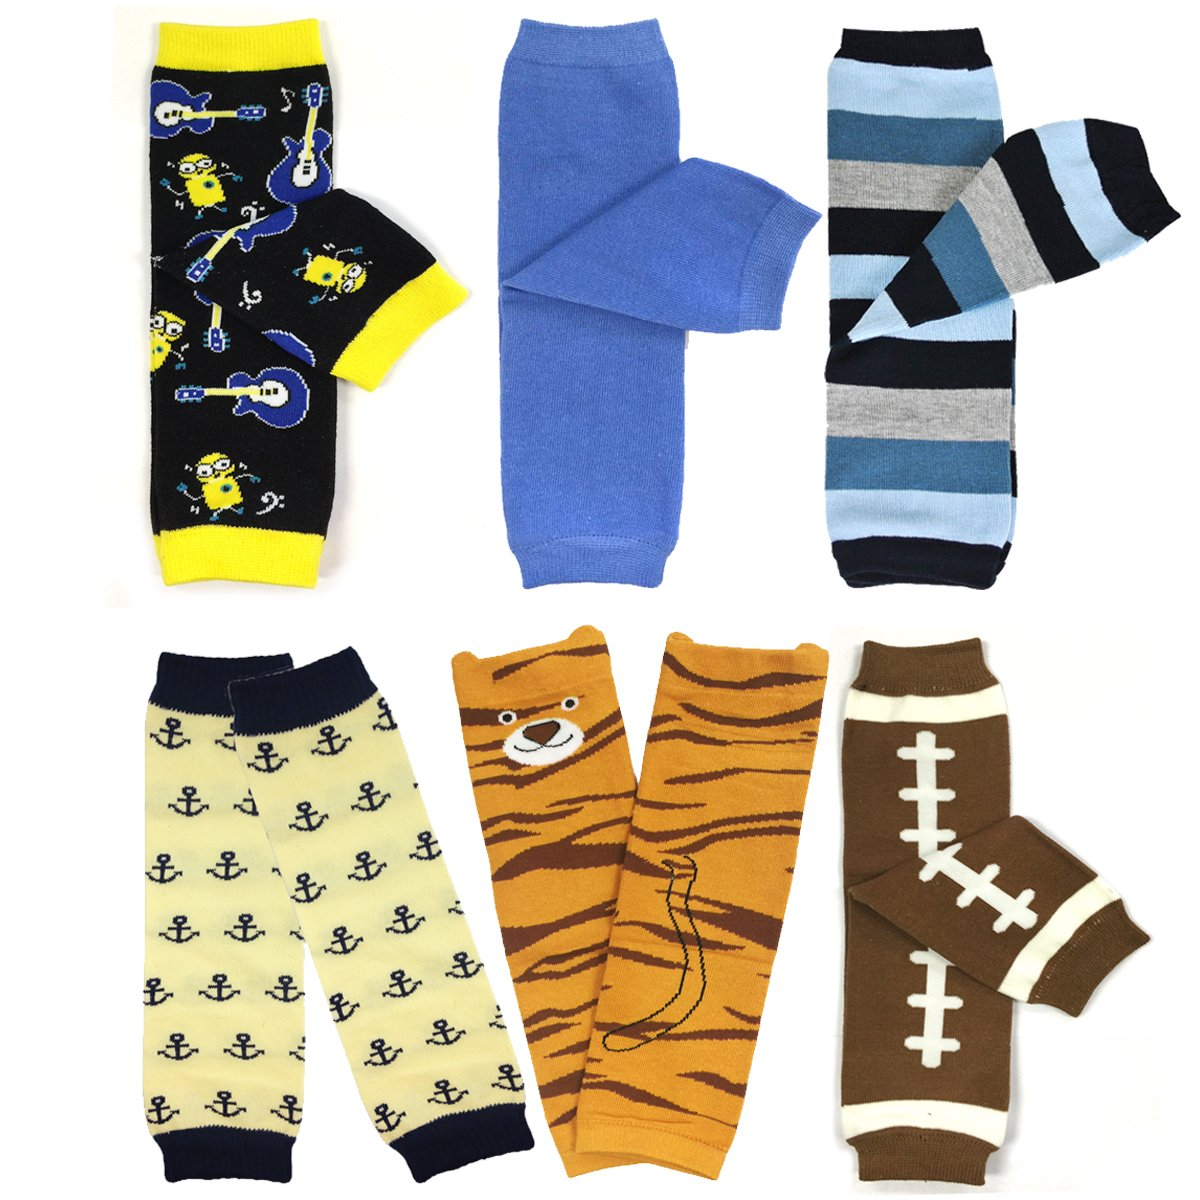 Bowbear Baby & Toddler Boys Set of 6 Assorted Leg Warmers, BS01 by Bowbear